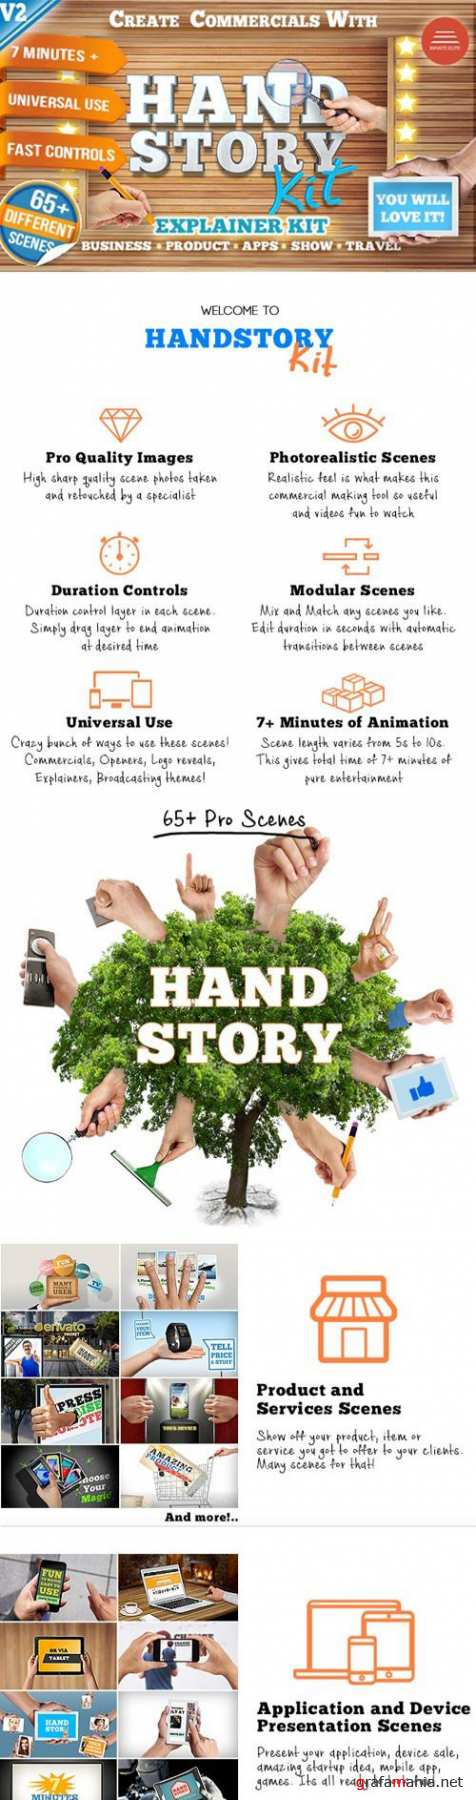 Hand Explainer Product Commercial Kit V2 - 15678999 (Videohive)